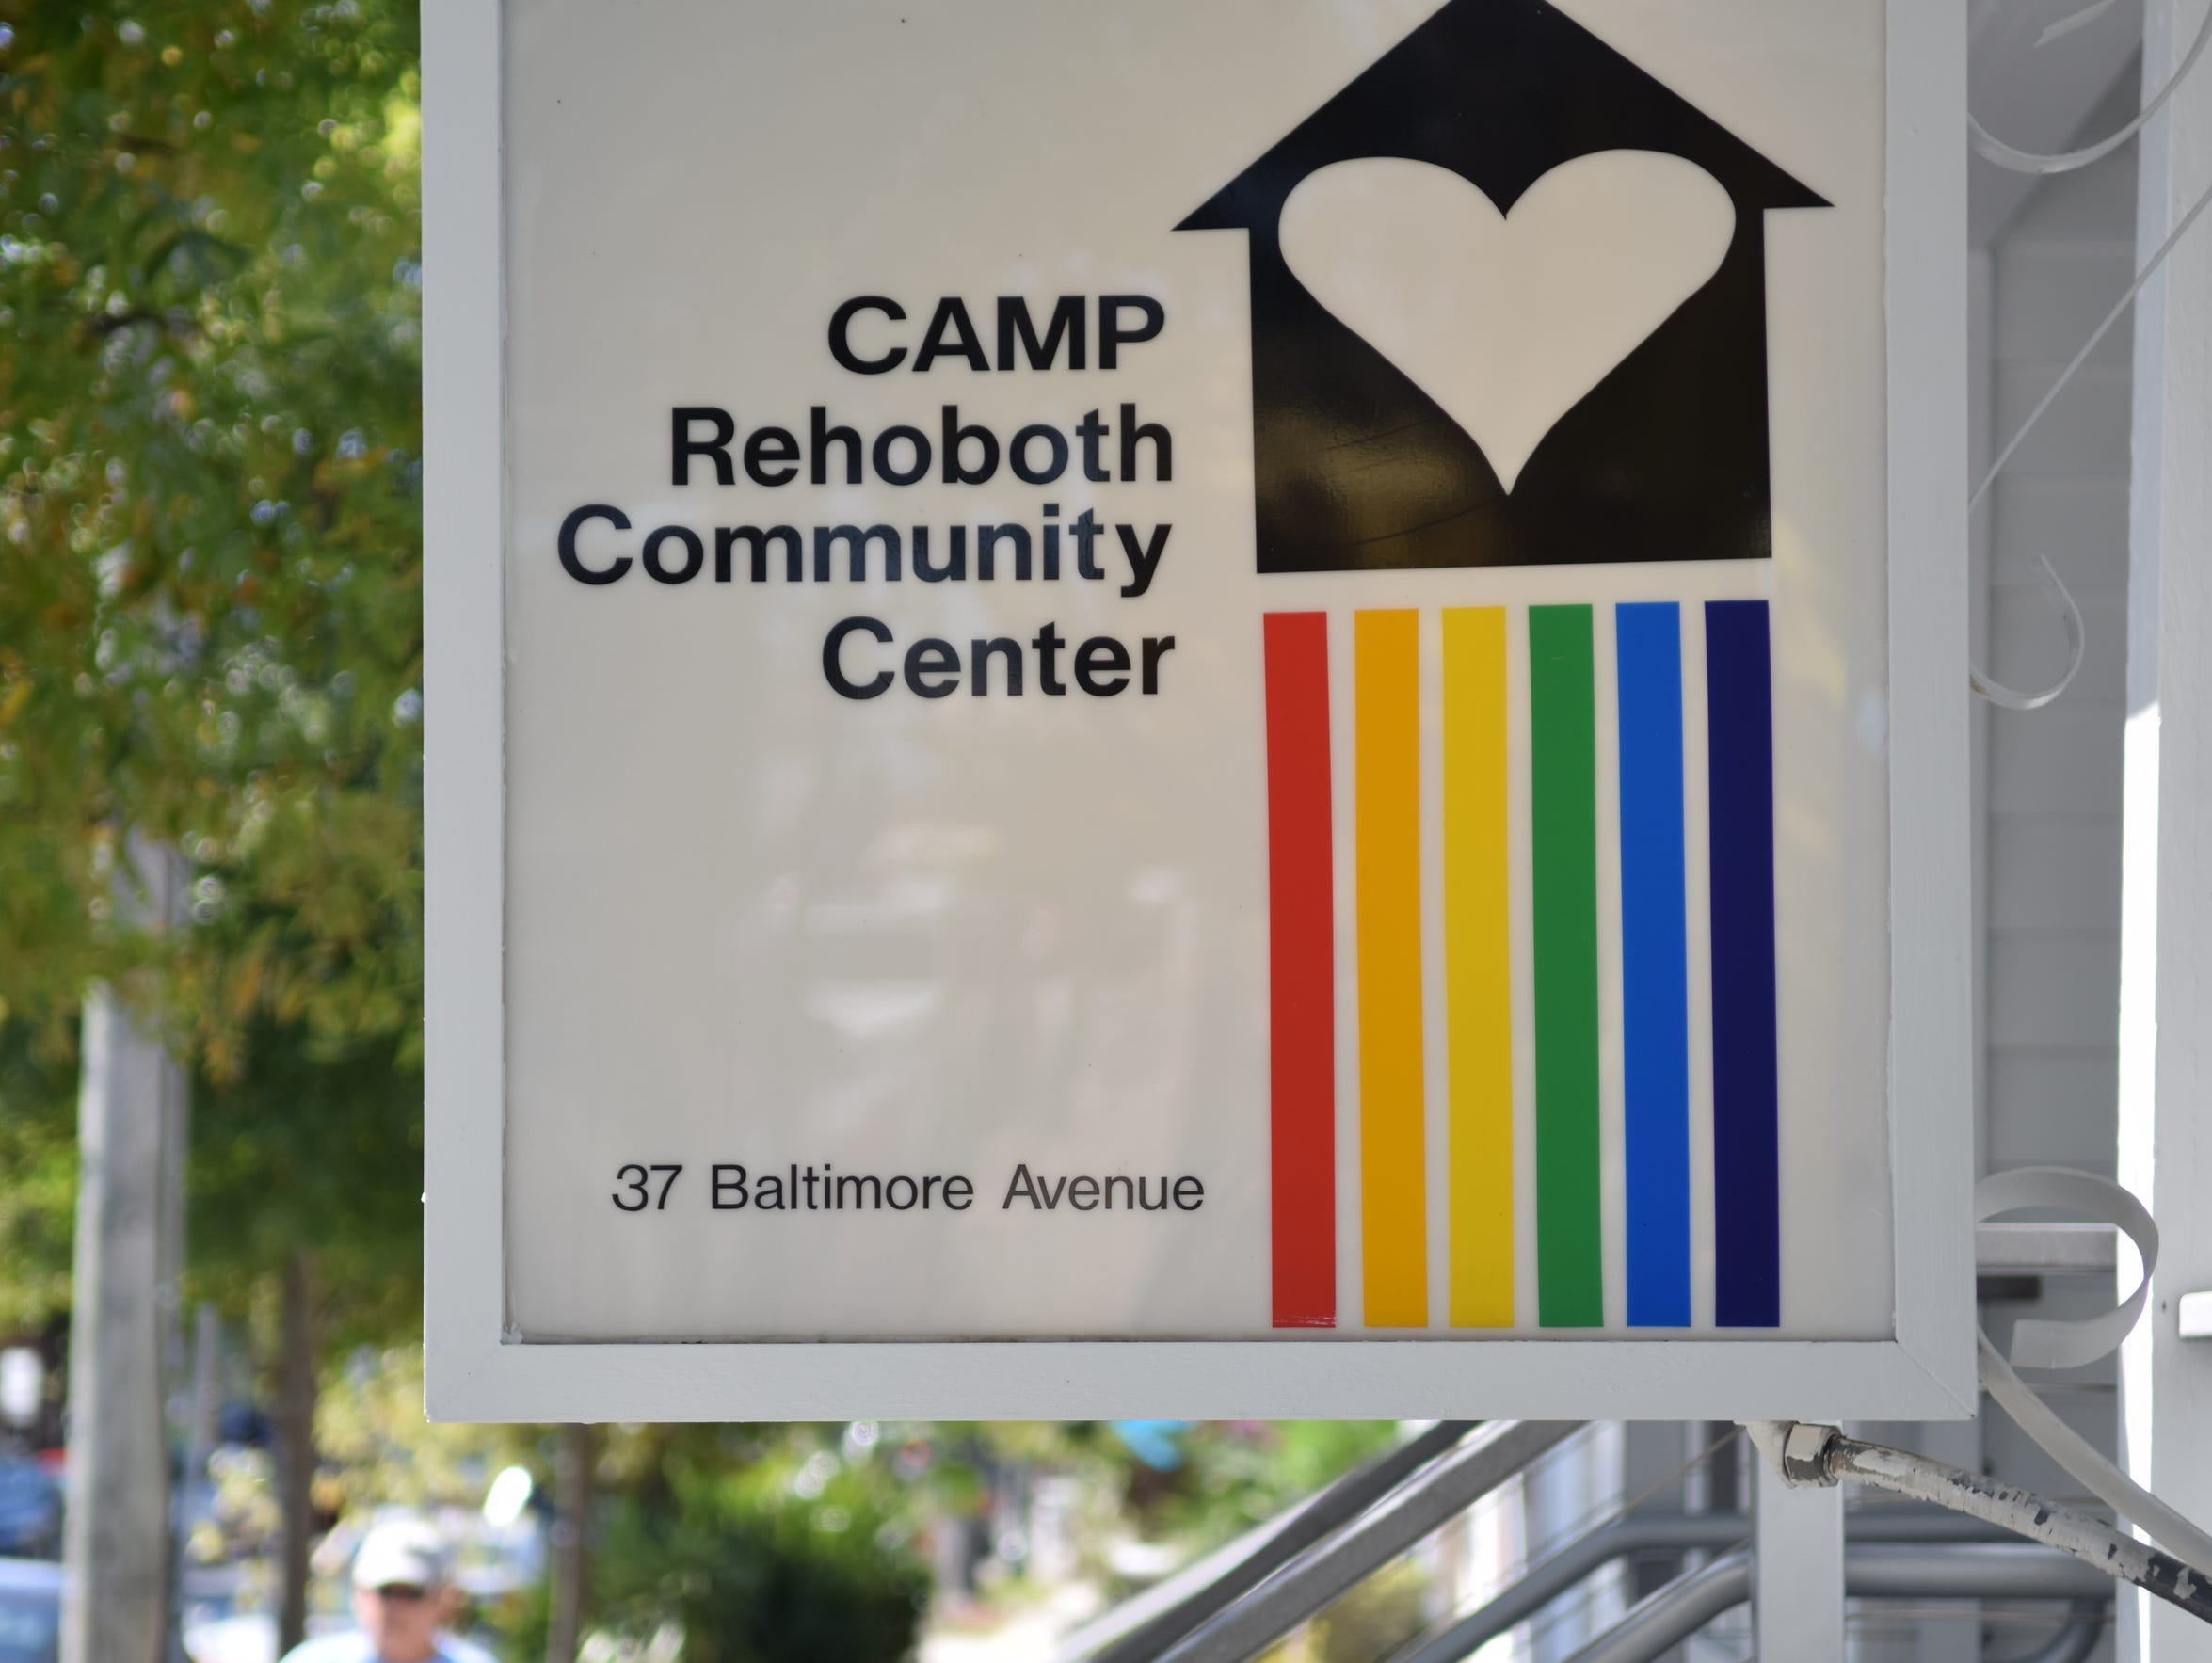 CAMP Rehoboth has been part of the community for more